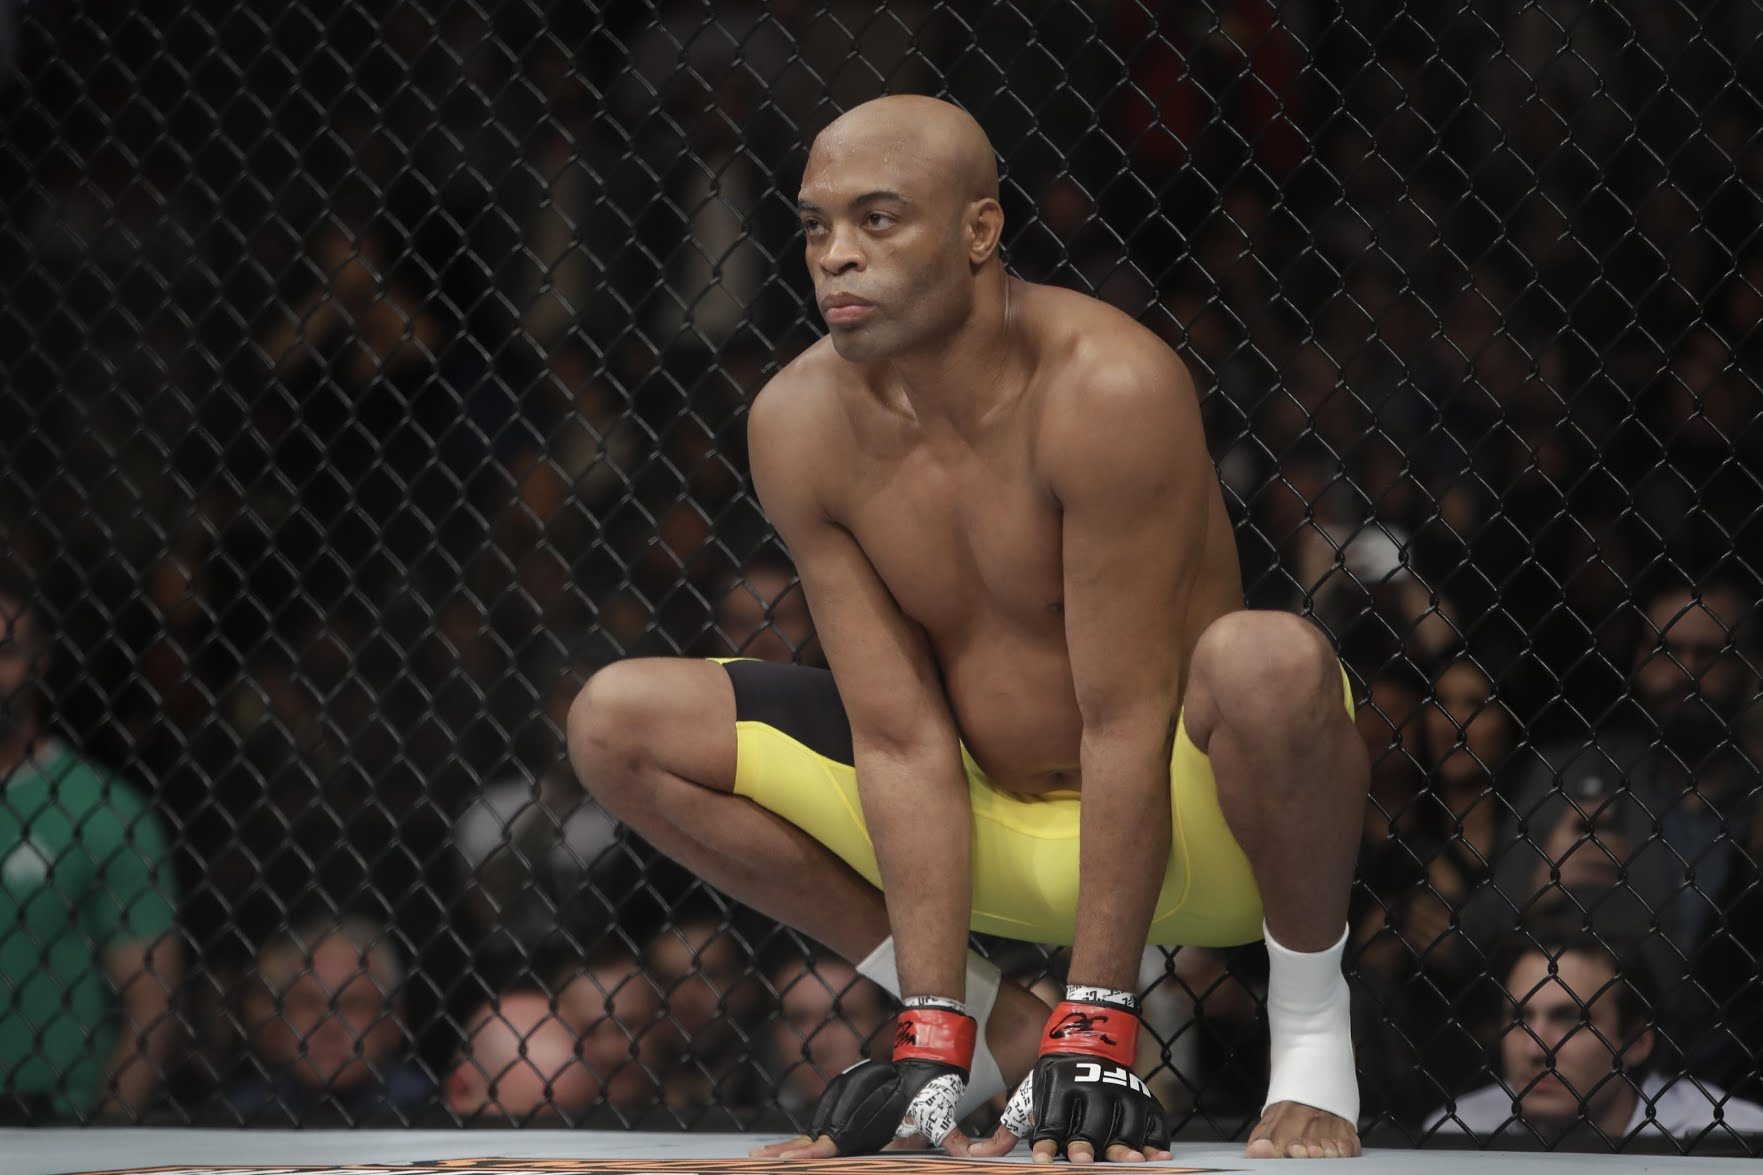 UFC: UFC Legend Anderson Silva won't retire even with 4-Year USADA ban, still hoping for Roy Jones Jr. bout - Anderson Silva